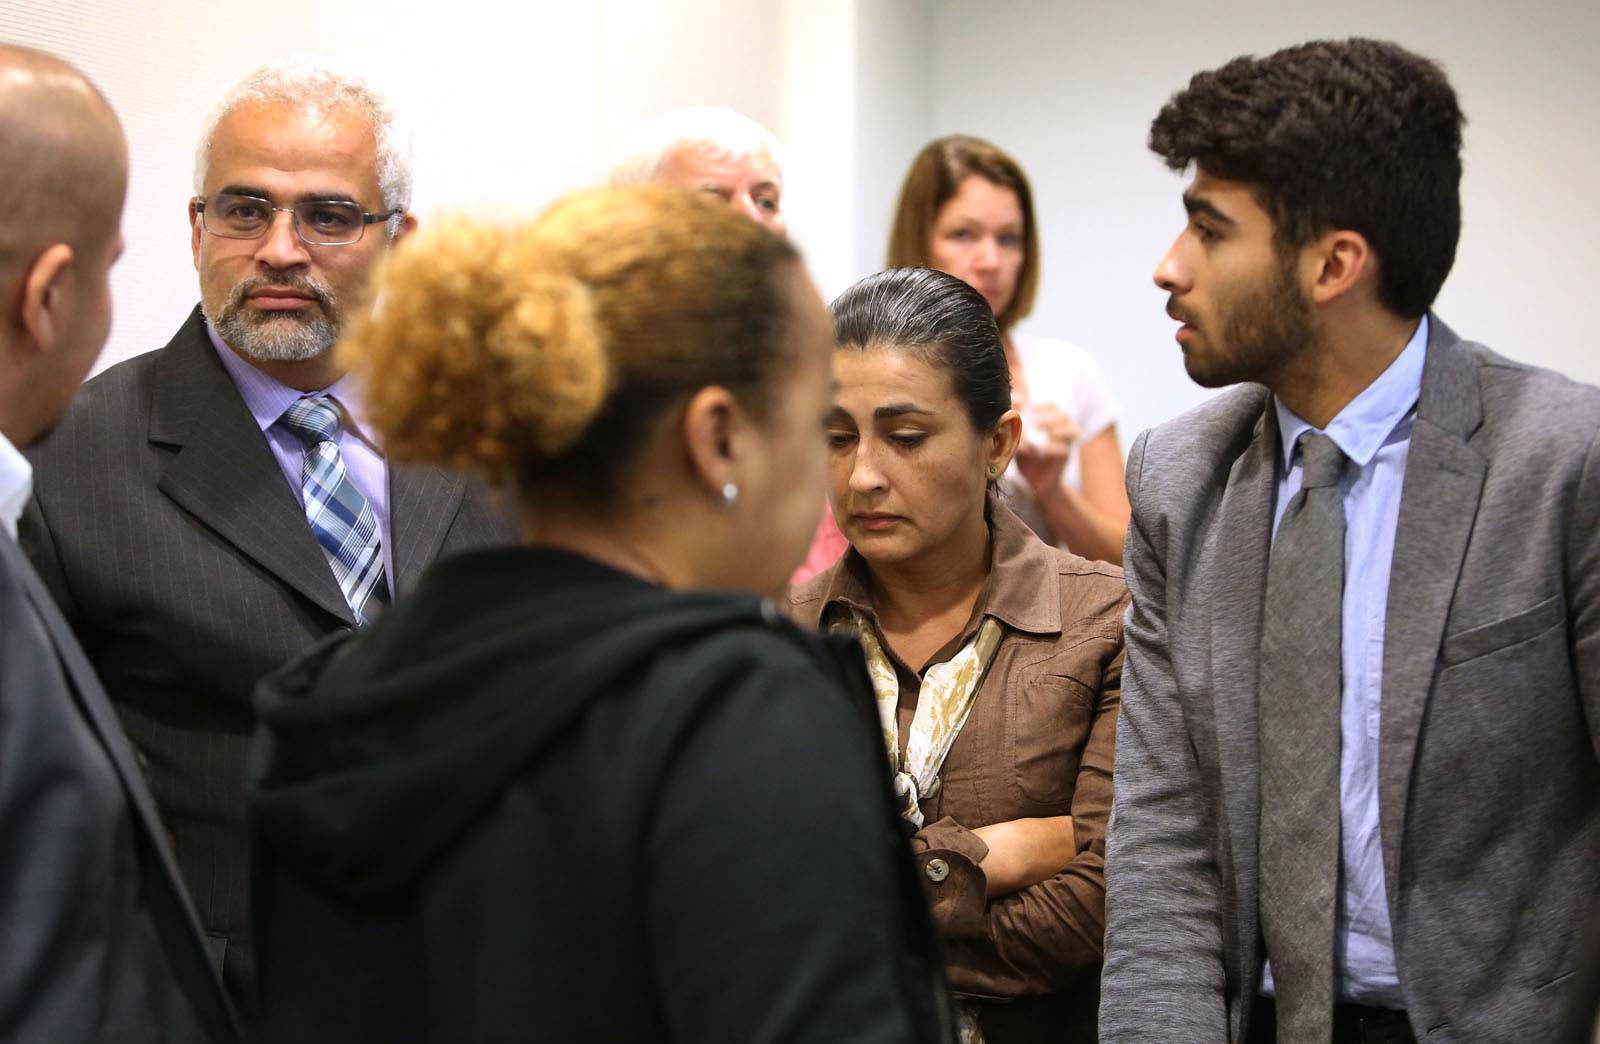 The Aguilar family, from left facing, Carlos, Claudia and Alex, talk about defense attorney Michael Ruppert's closing statements during a brief recess in Pedro Bravo's murder trial in courtroom 1B of the Alachua County Criminal Justice Center Friday, August 15, 2014.  Bravo is accused of killing University of Florida student Christian Aguilar.  (Doug Finger/The Gainesville Sun/Pool)